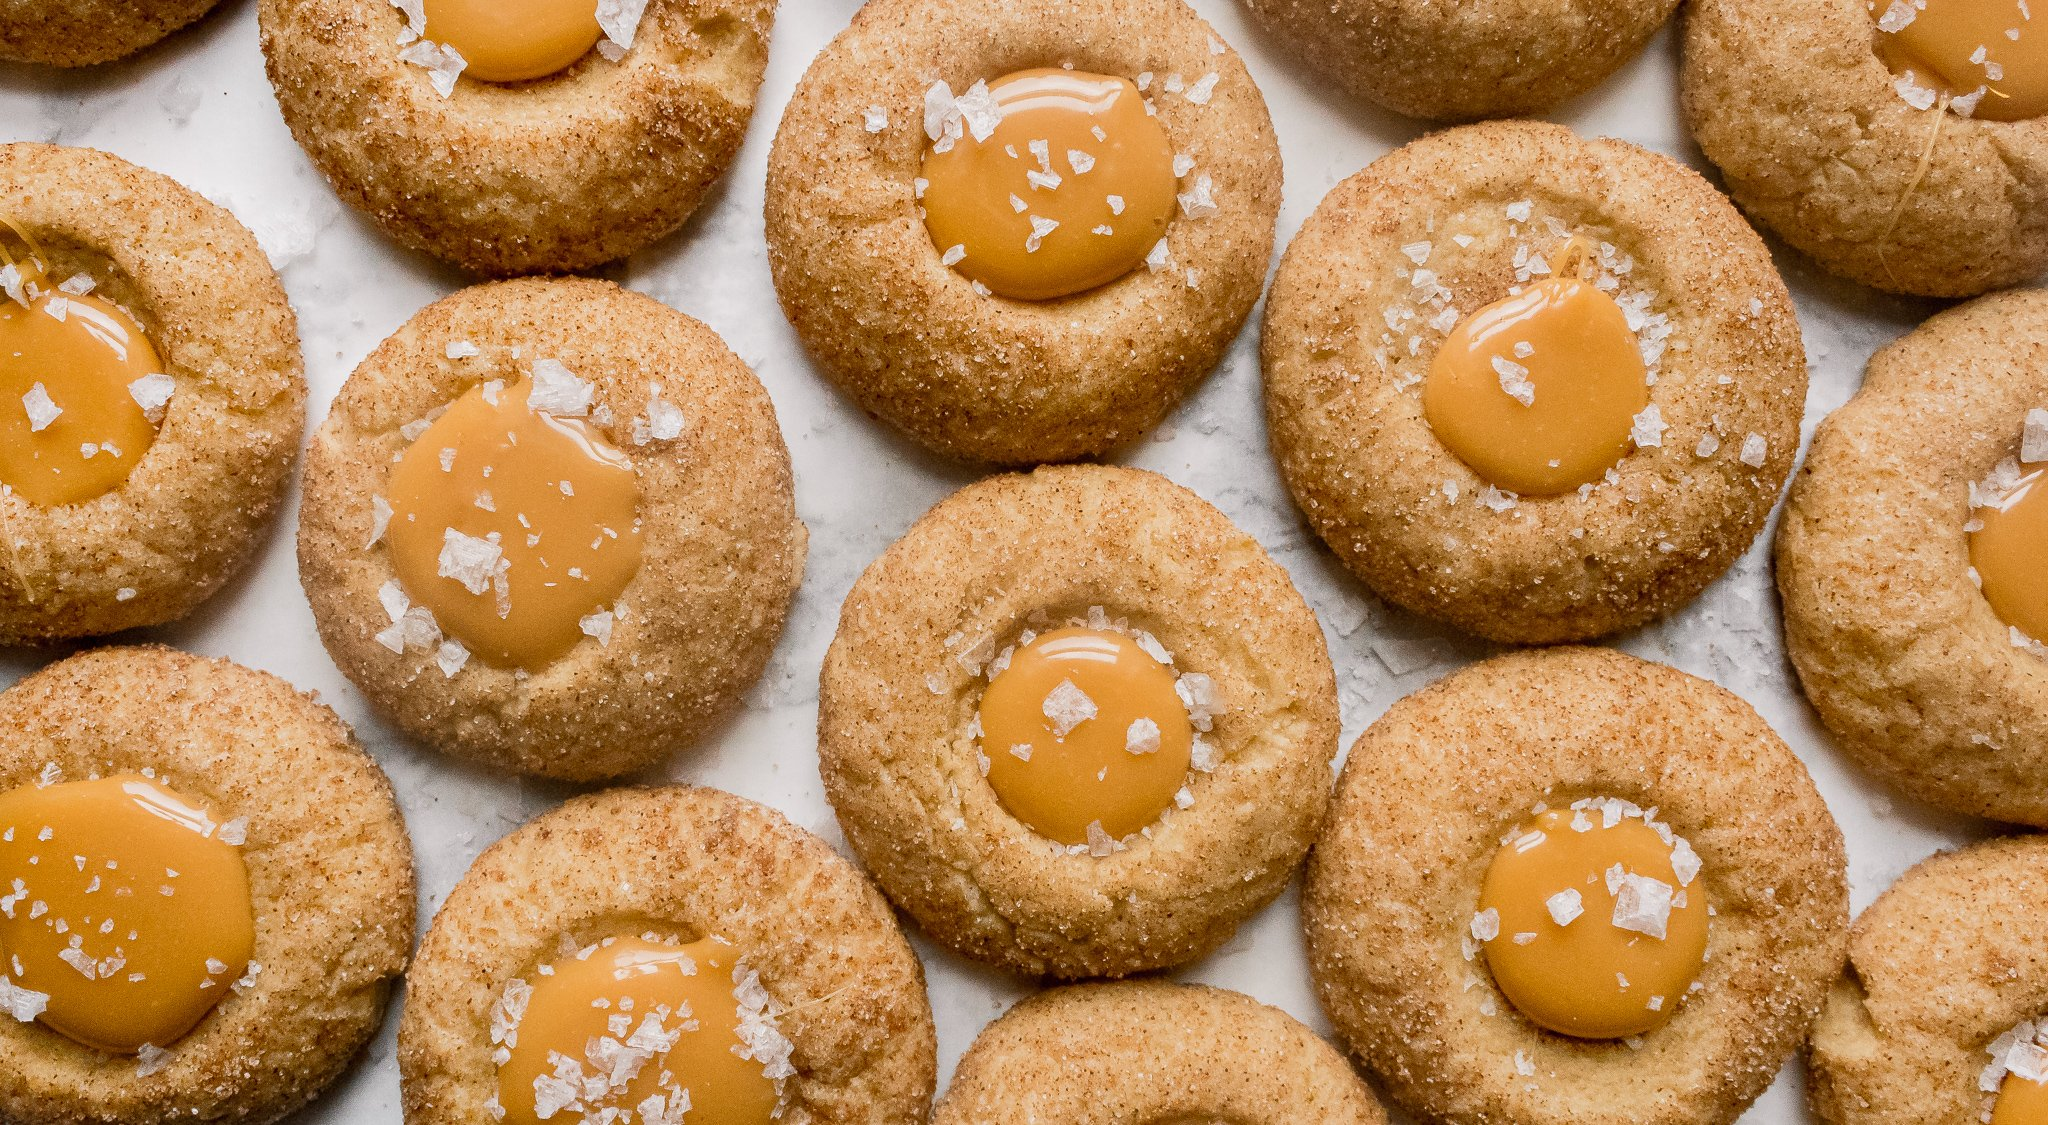 Best Easy Salted Caramel Cinnamon Thumbprint Cookies Recipe - Chenée Today